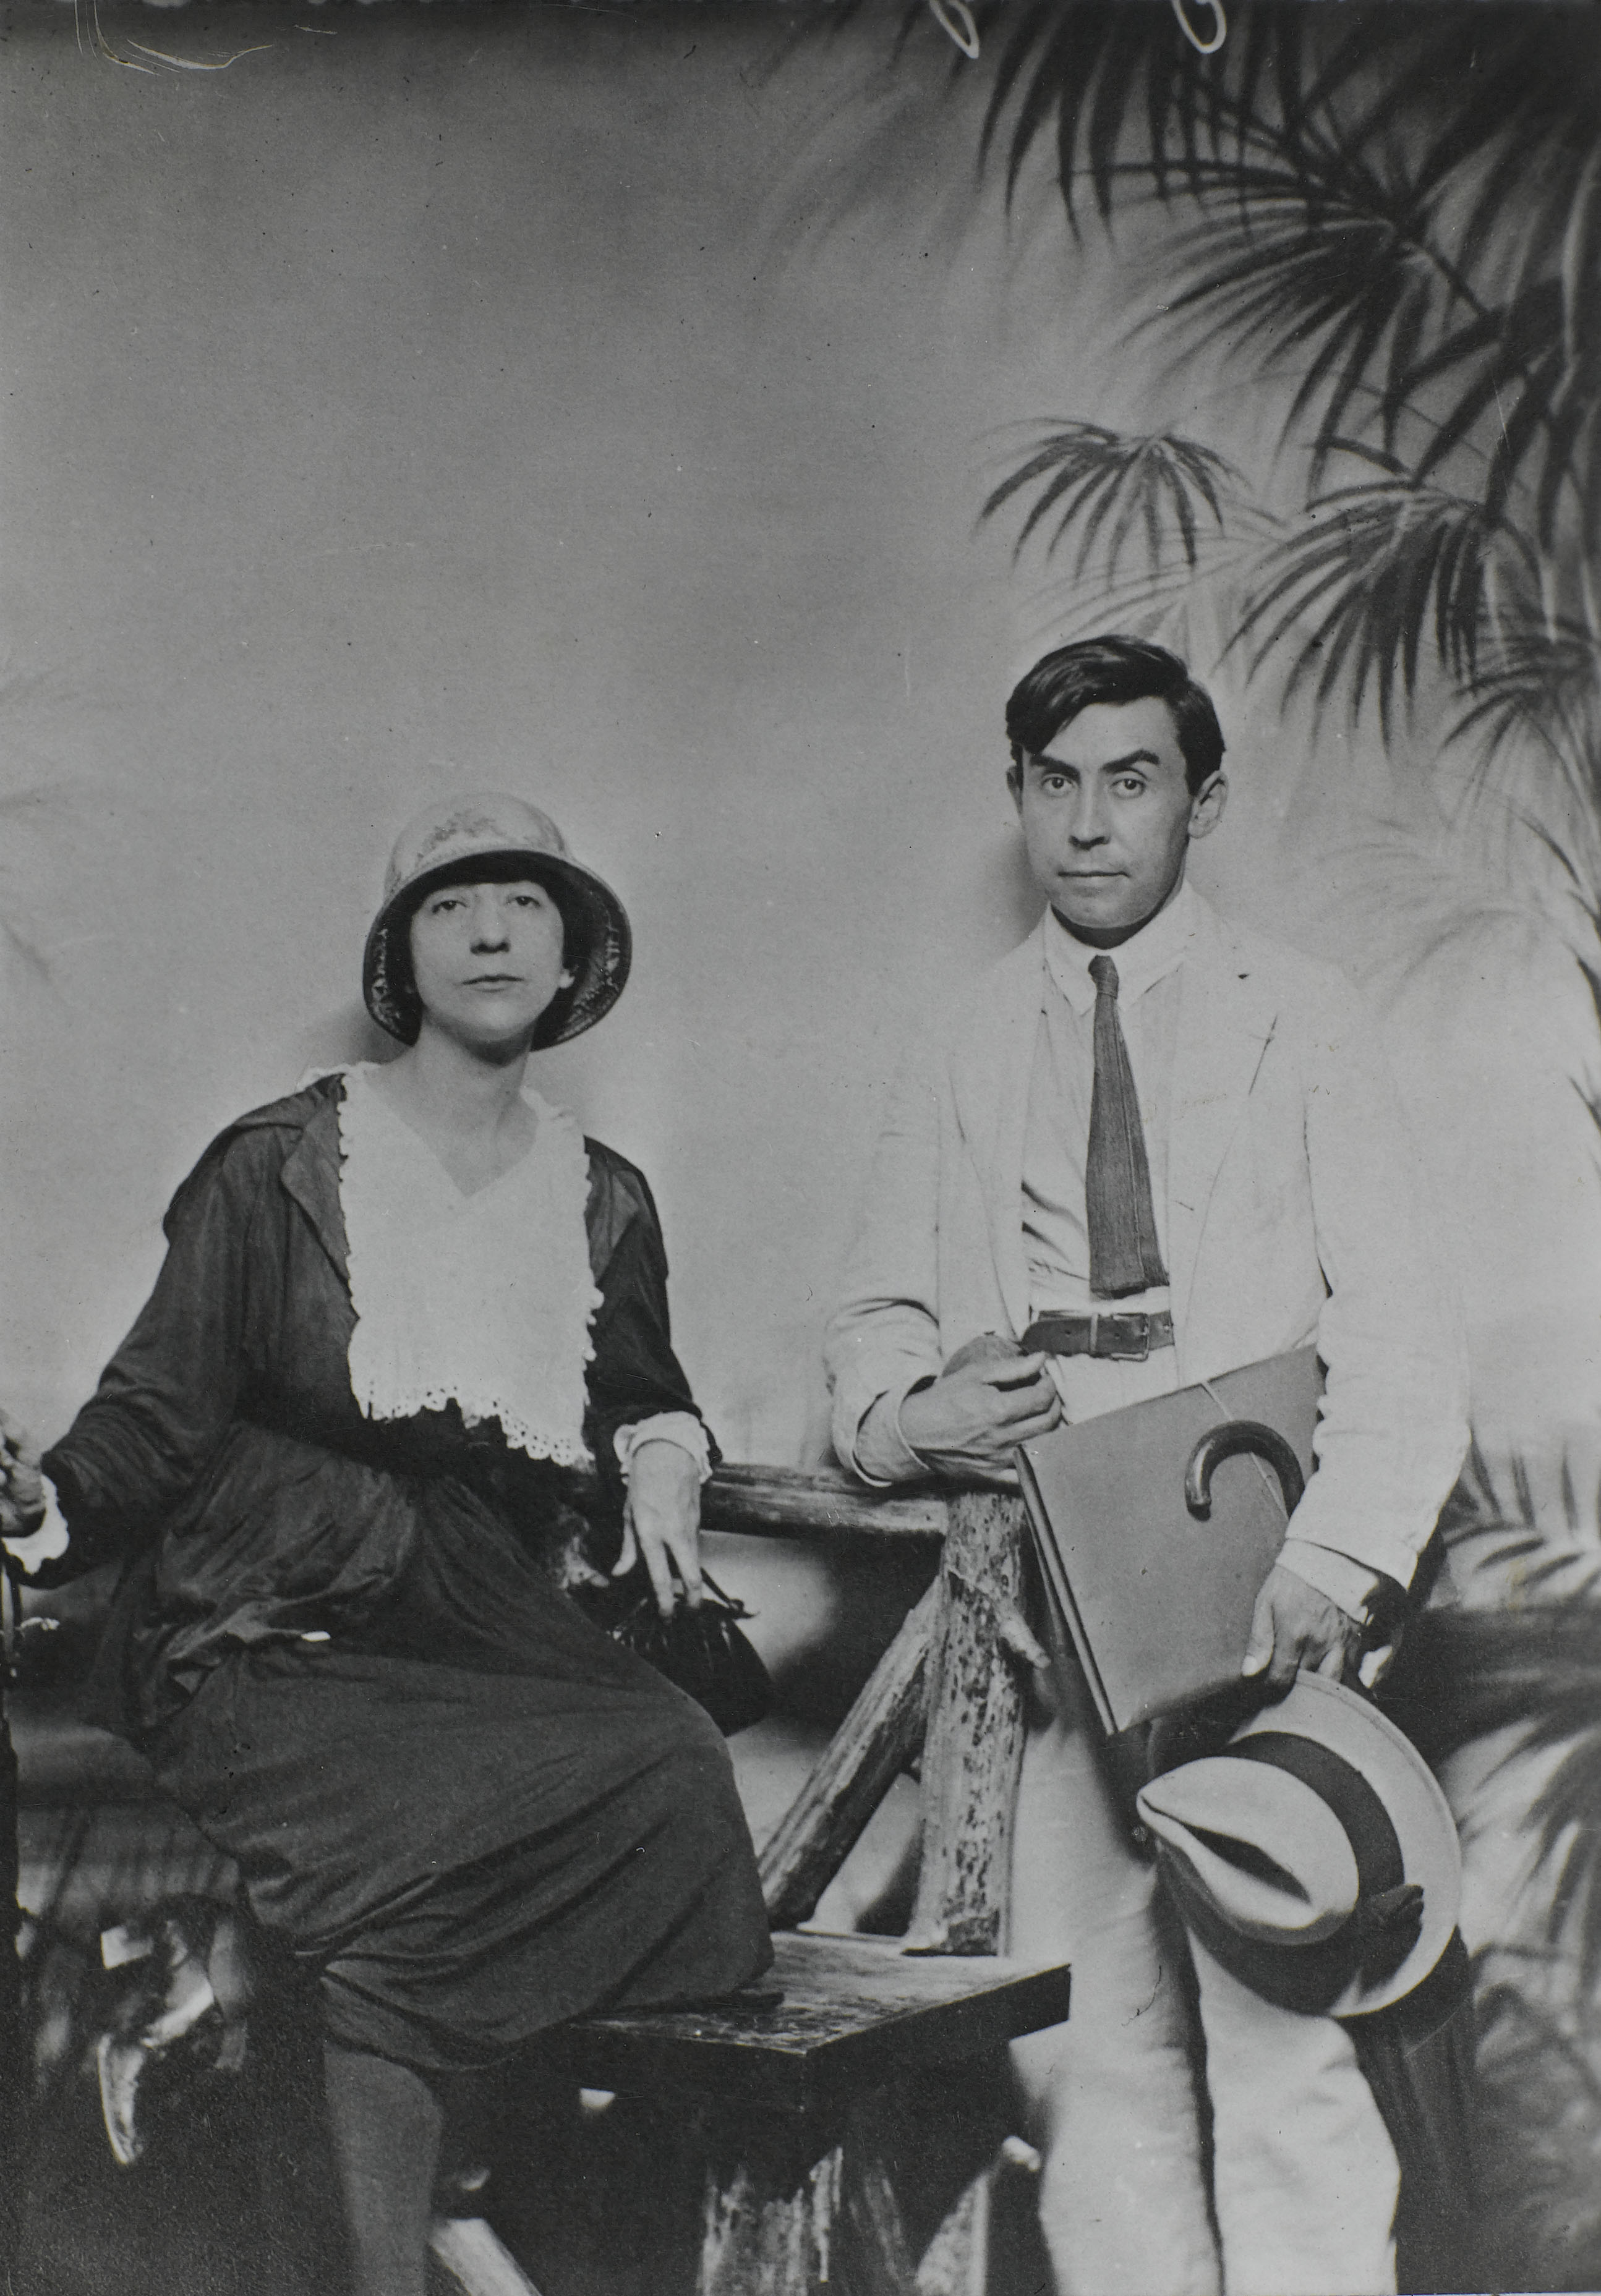 <em>Albert Gleizes et Juliette Roche</em>, New York, 1915<br /> Paris, Centre Pompidou, musée national d'art moderne/cci, bibliothèque Kandinsky (fonds Gleizes)